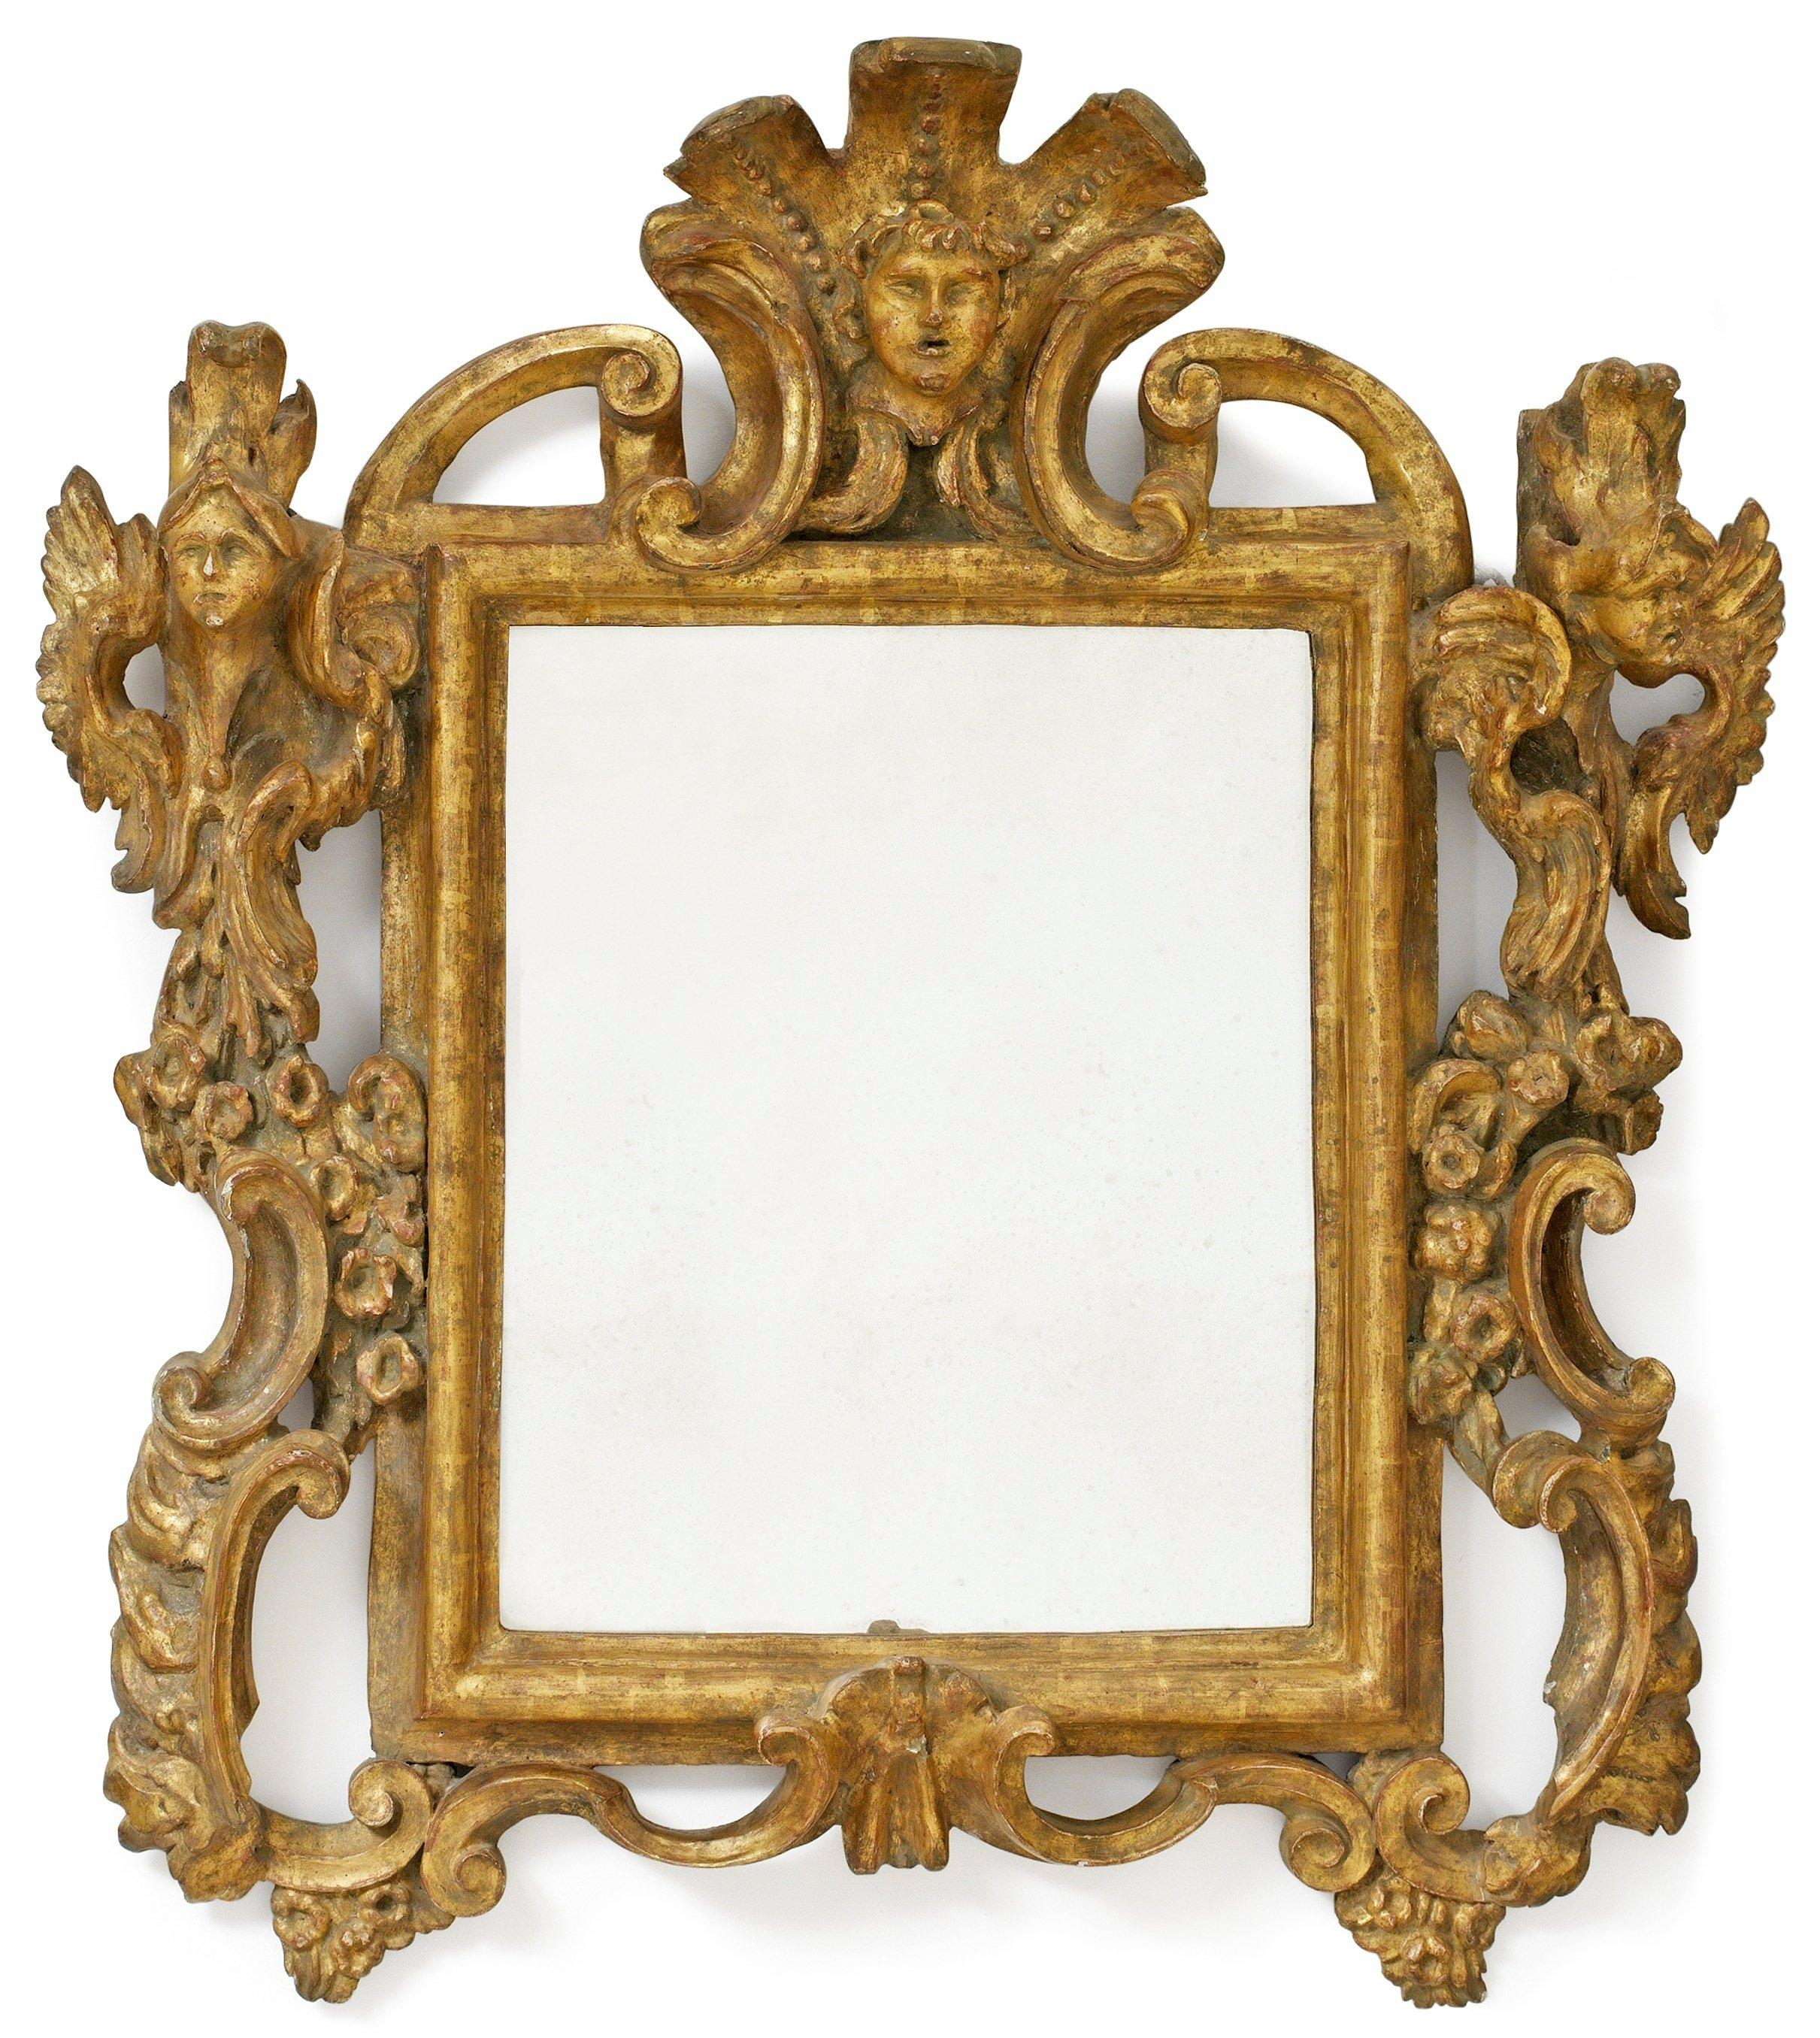 Bathroom: Astounding Baroque Mirror With Unique Frame For Bathroom In Large Baroque Mirror (View 14 of 20)